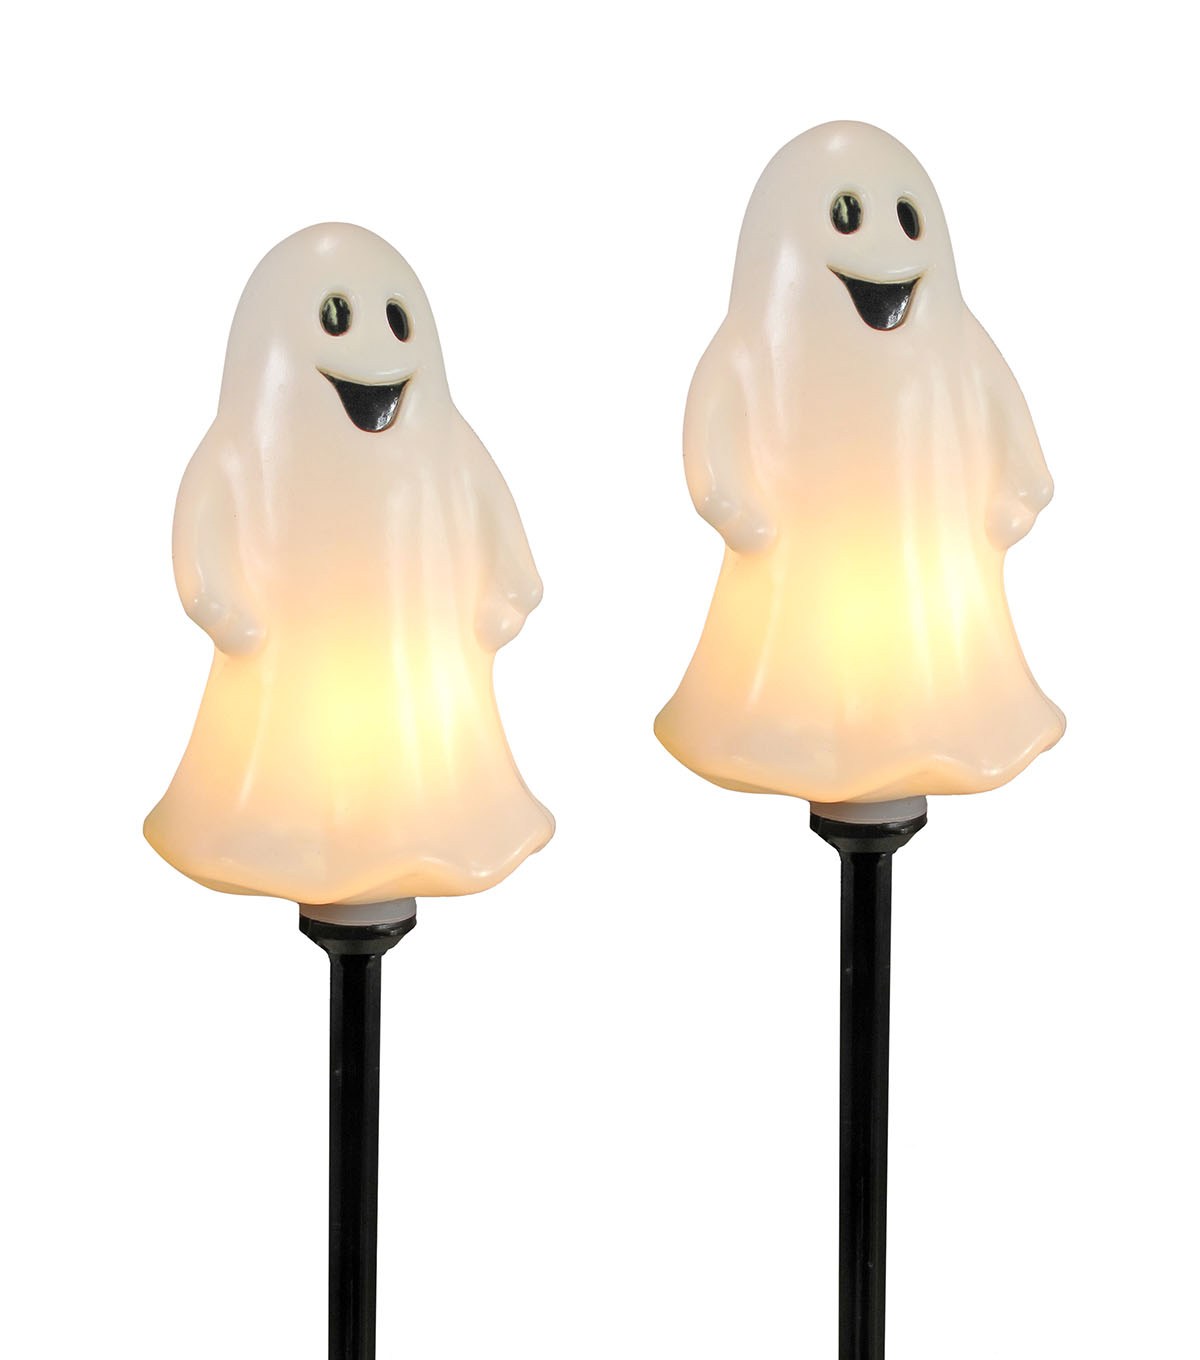 Maker\u0027s Halloween Decor 4 ct Ghost Pathway Markers